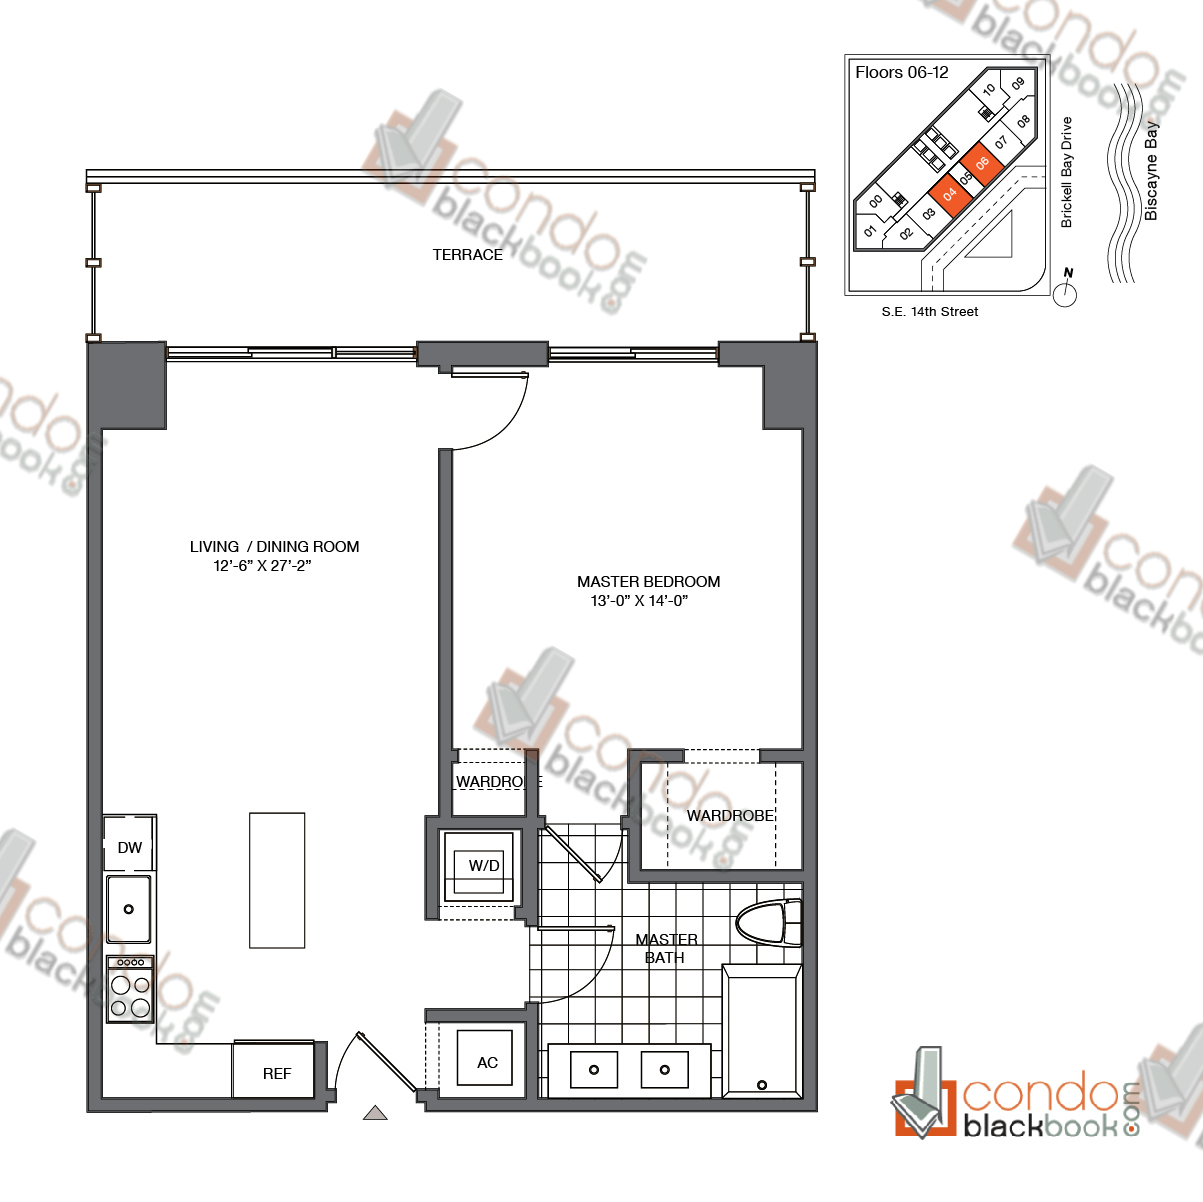 Floor plan for Brickell House Brickell Miami, model A7_6-12, line 04, 06, 1/1 bedrooms, 752 sq ft